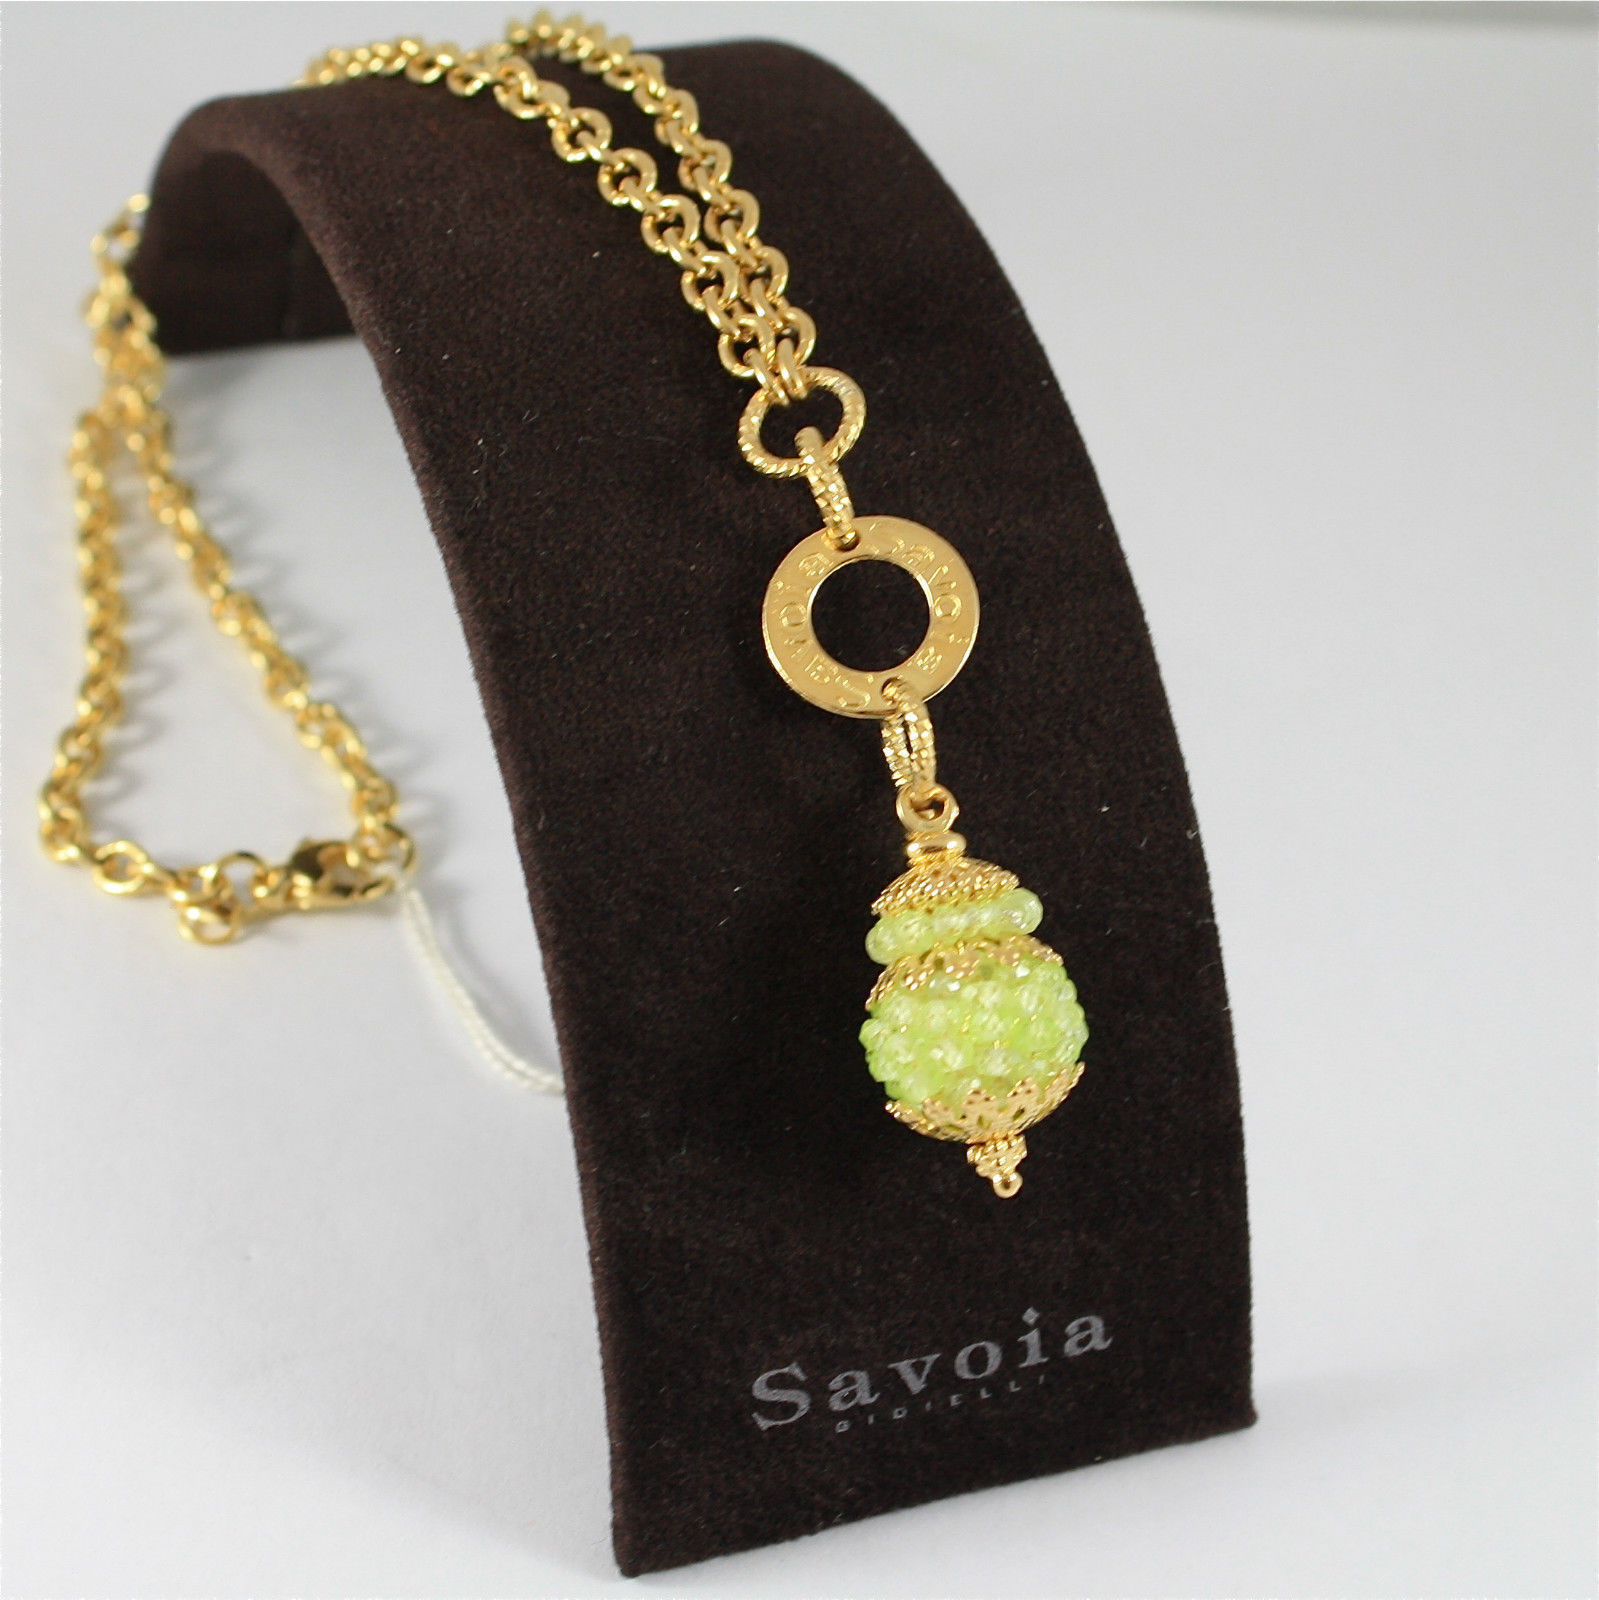 925 SILVER NECKLACE, GOLD PL.WITH FACETED PERIDOT MADE IN ITALY BY SAVOIA JEWELS